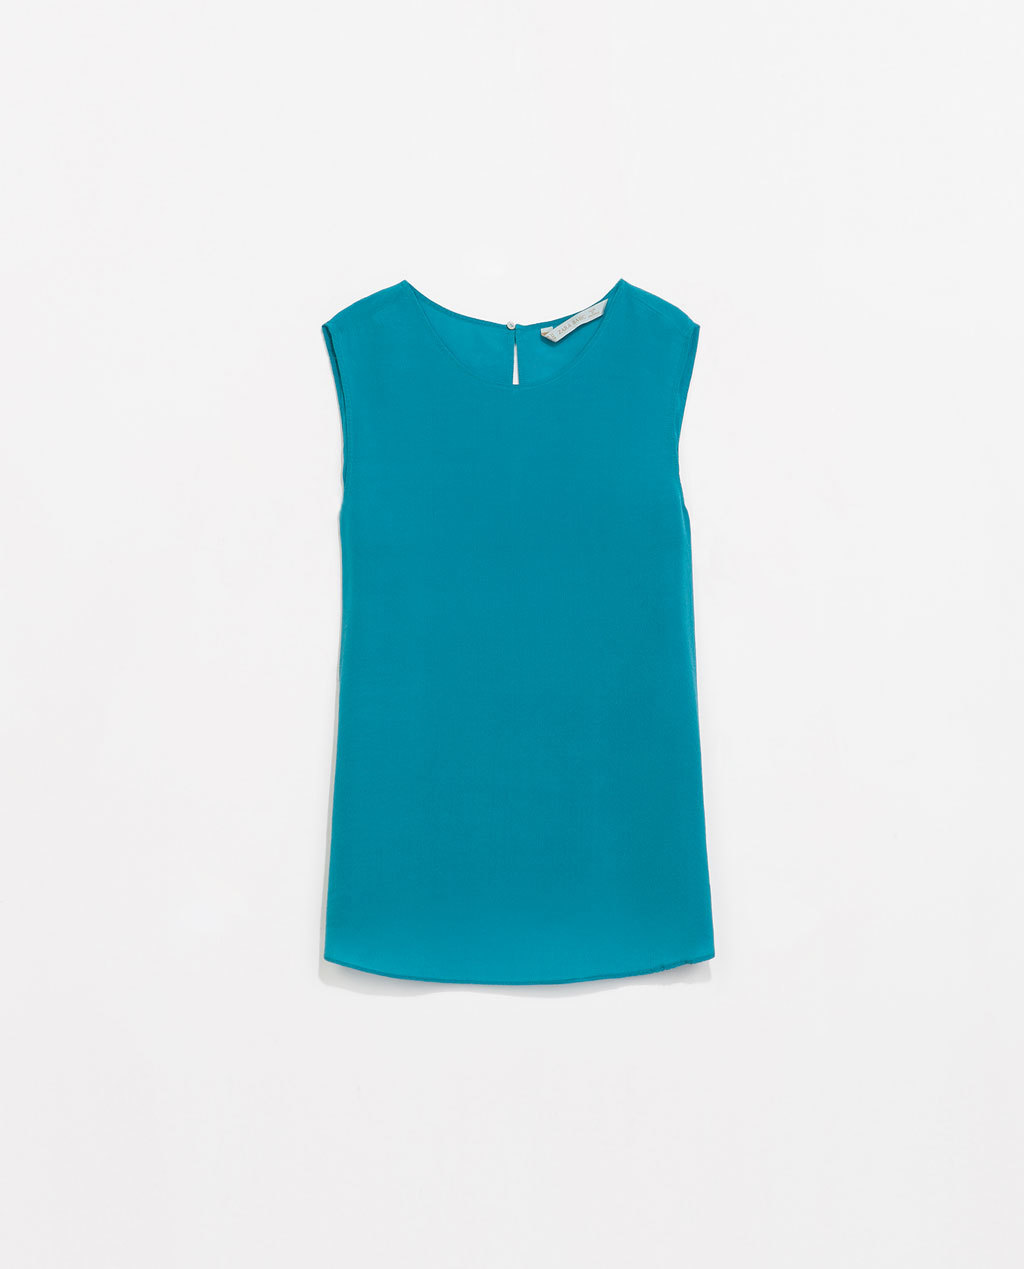 Flowy Silk Top - pattern: plain; sleeve style: sleeveless; predominant colour: teal; occasions: casual, work, creative work; length: standard; style: top; fibres: silk - 100%; fit: straight cut; neckline: crew; sleeve length: sleeveless; texture group: crepes; pattern type: fabric; trends: hot brights; season: s/s 2014